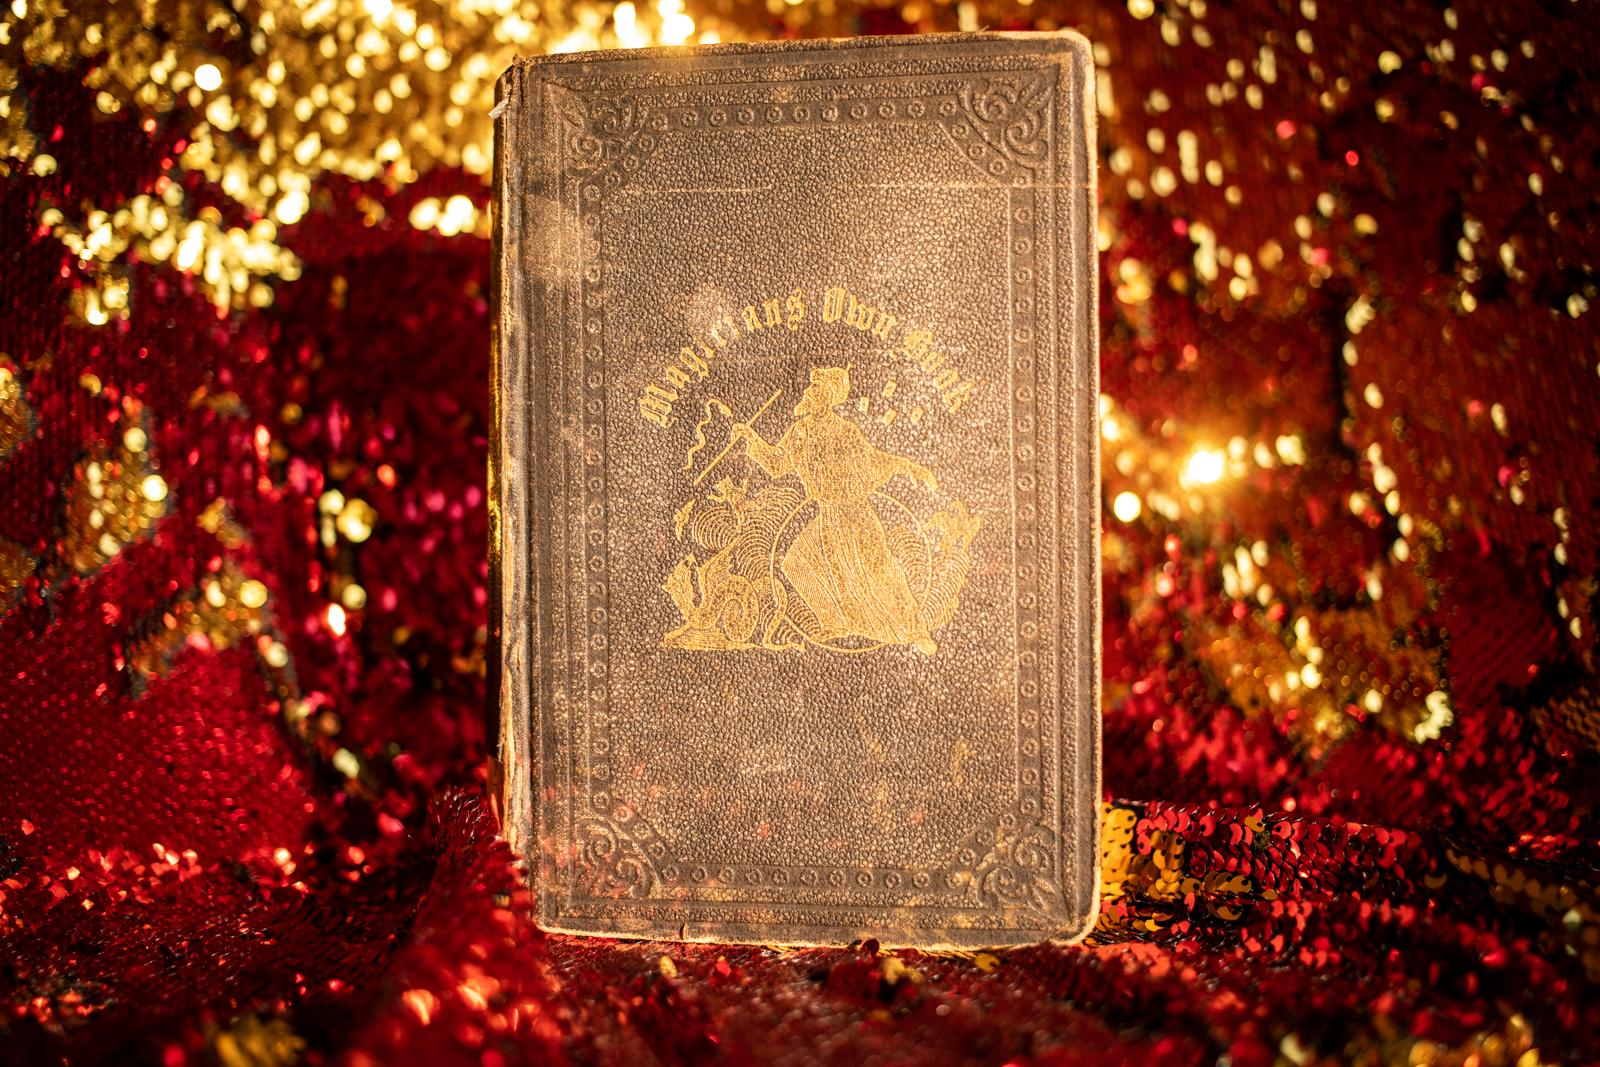 An old magic book that belongs to Elizabeth Messick. A former boyfriend gave it to her as a present.